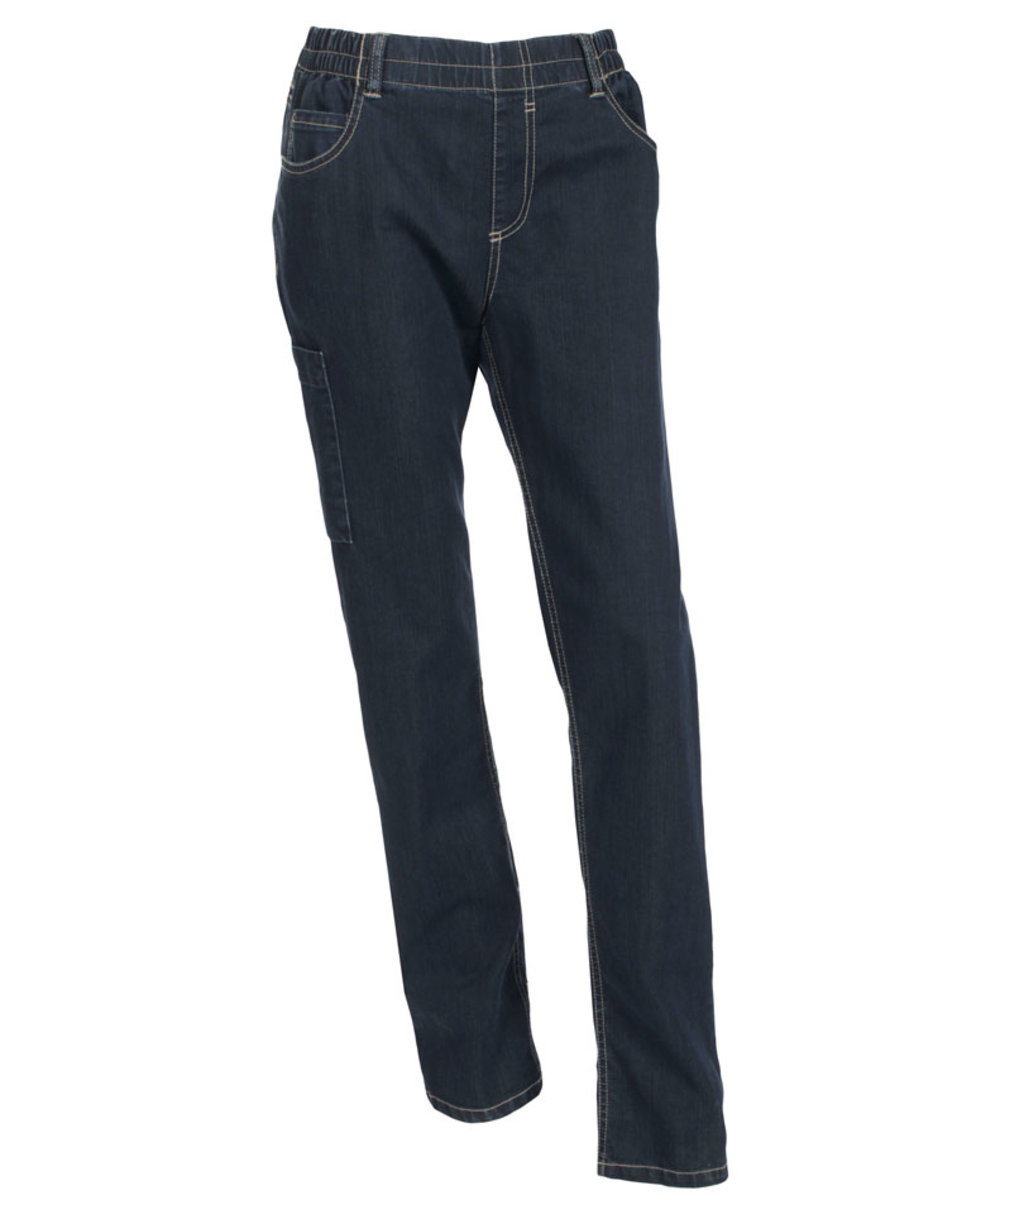 Nybo Workwear Jazz pull-on byxa unisex, Denimblå